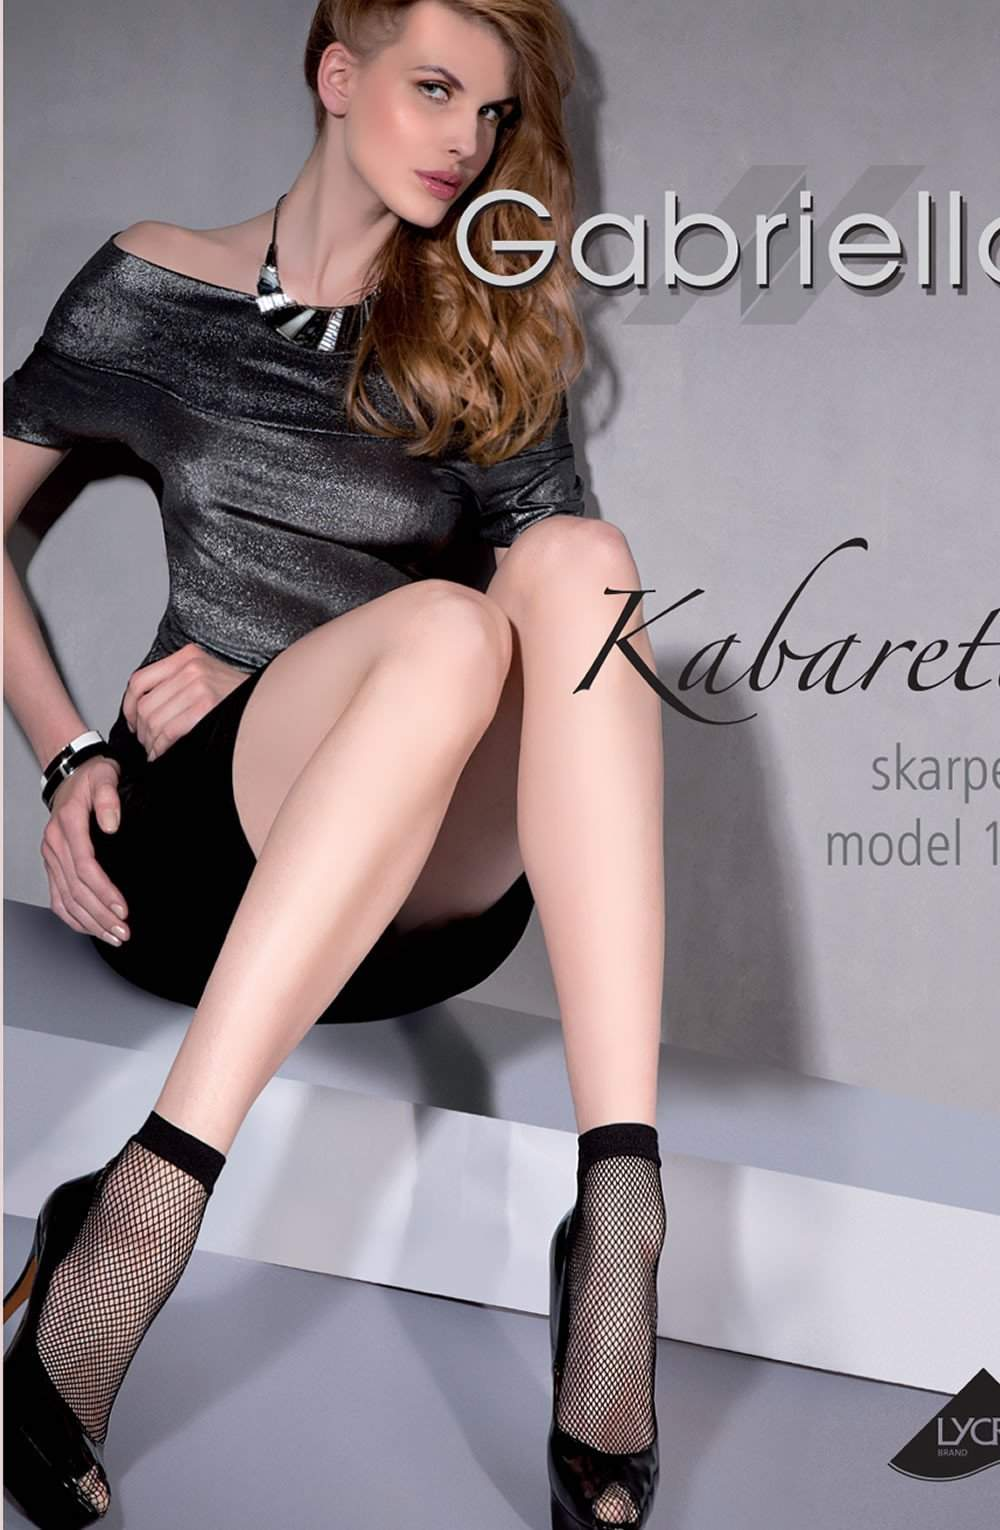 Kabaretta Socks in Nero by Gabriella - Gabriella - Katys Boutique Lingerie USA